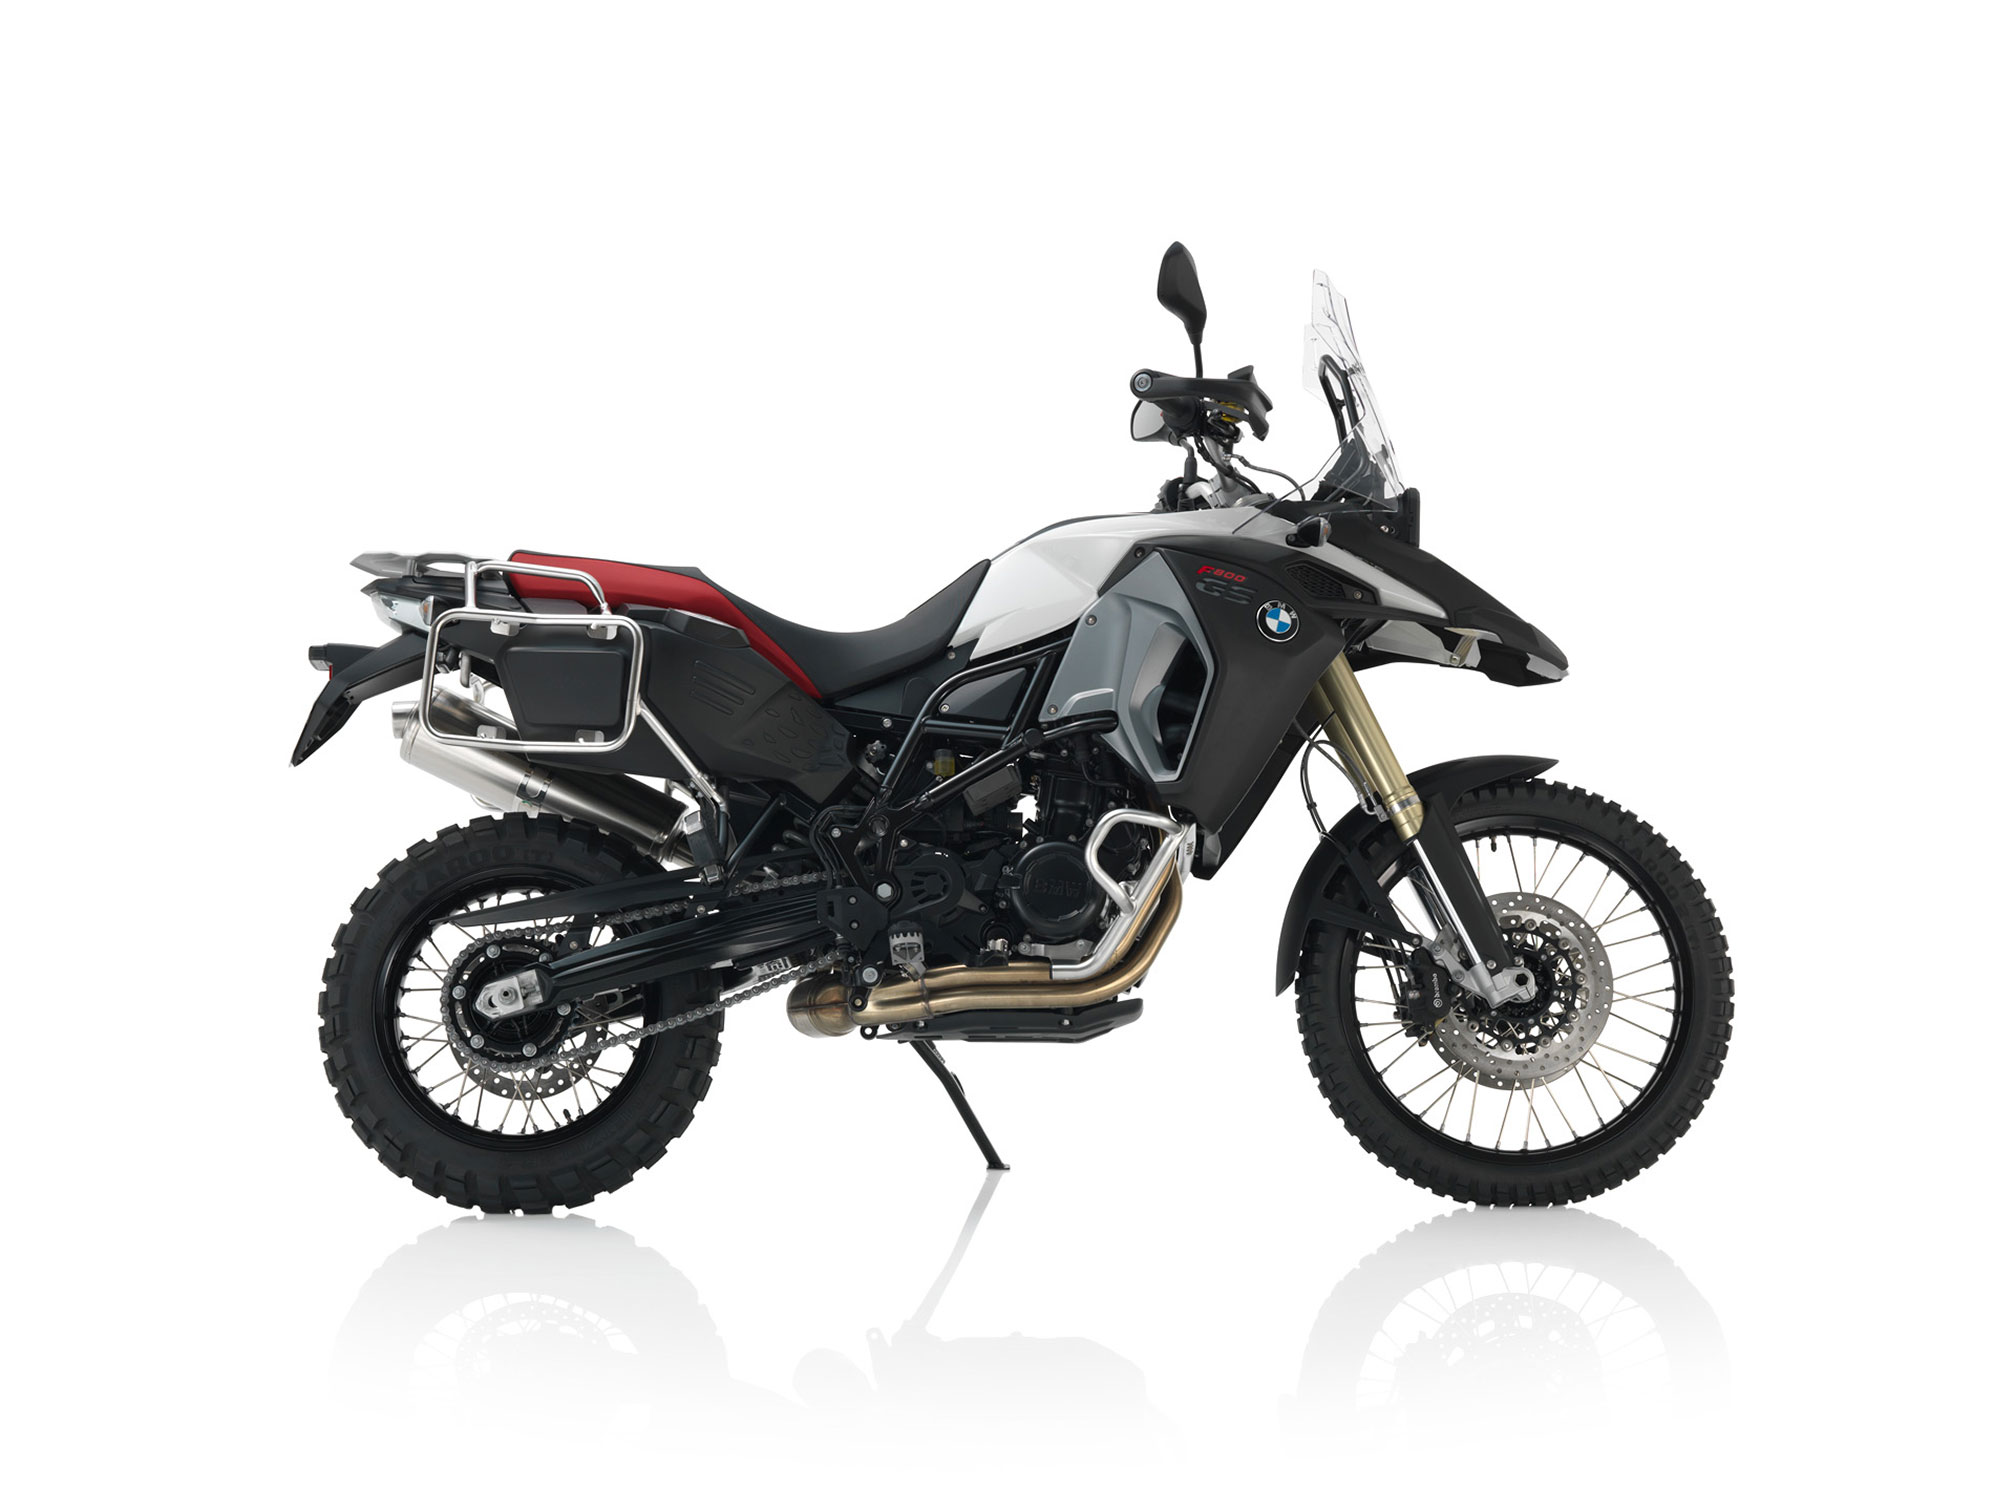 bmw f 800 gs adventure specs 2014 2015 autoevolution. Black Bedroom Furniture Sets. Home Design Ideas